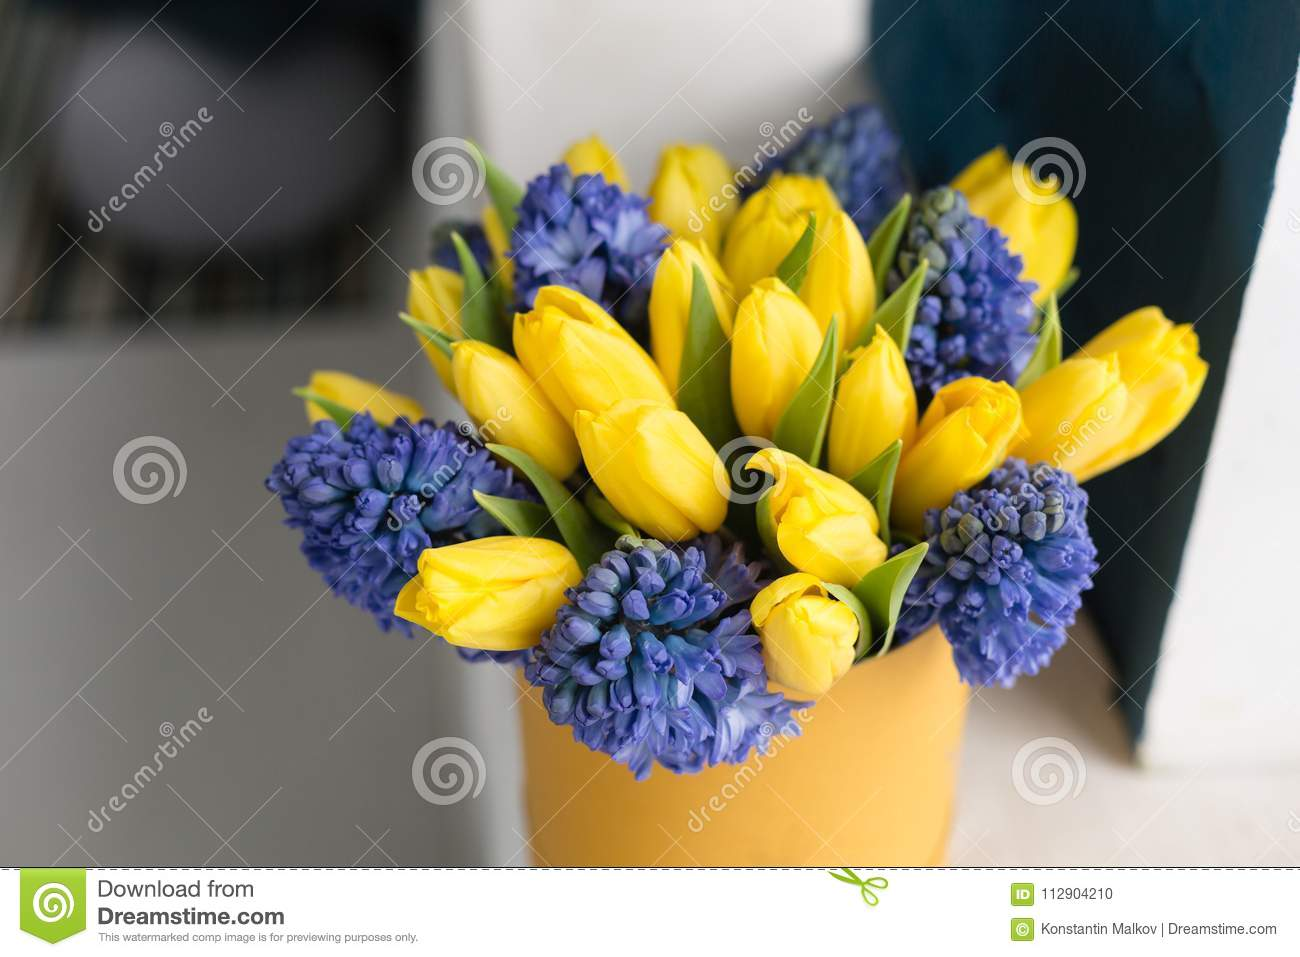 Sunny spring morning bunch of blue hyacinths and yellow tulips on bunch of blue hyacinths and yellow tulips on white table present izmirmasajfo